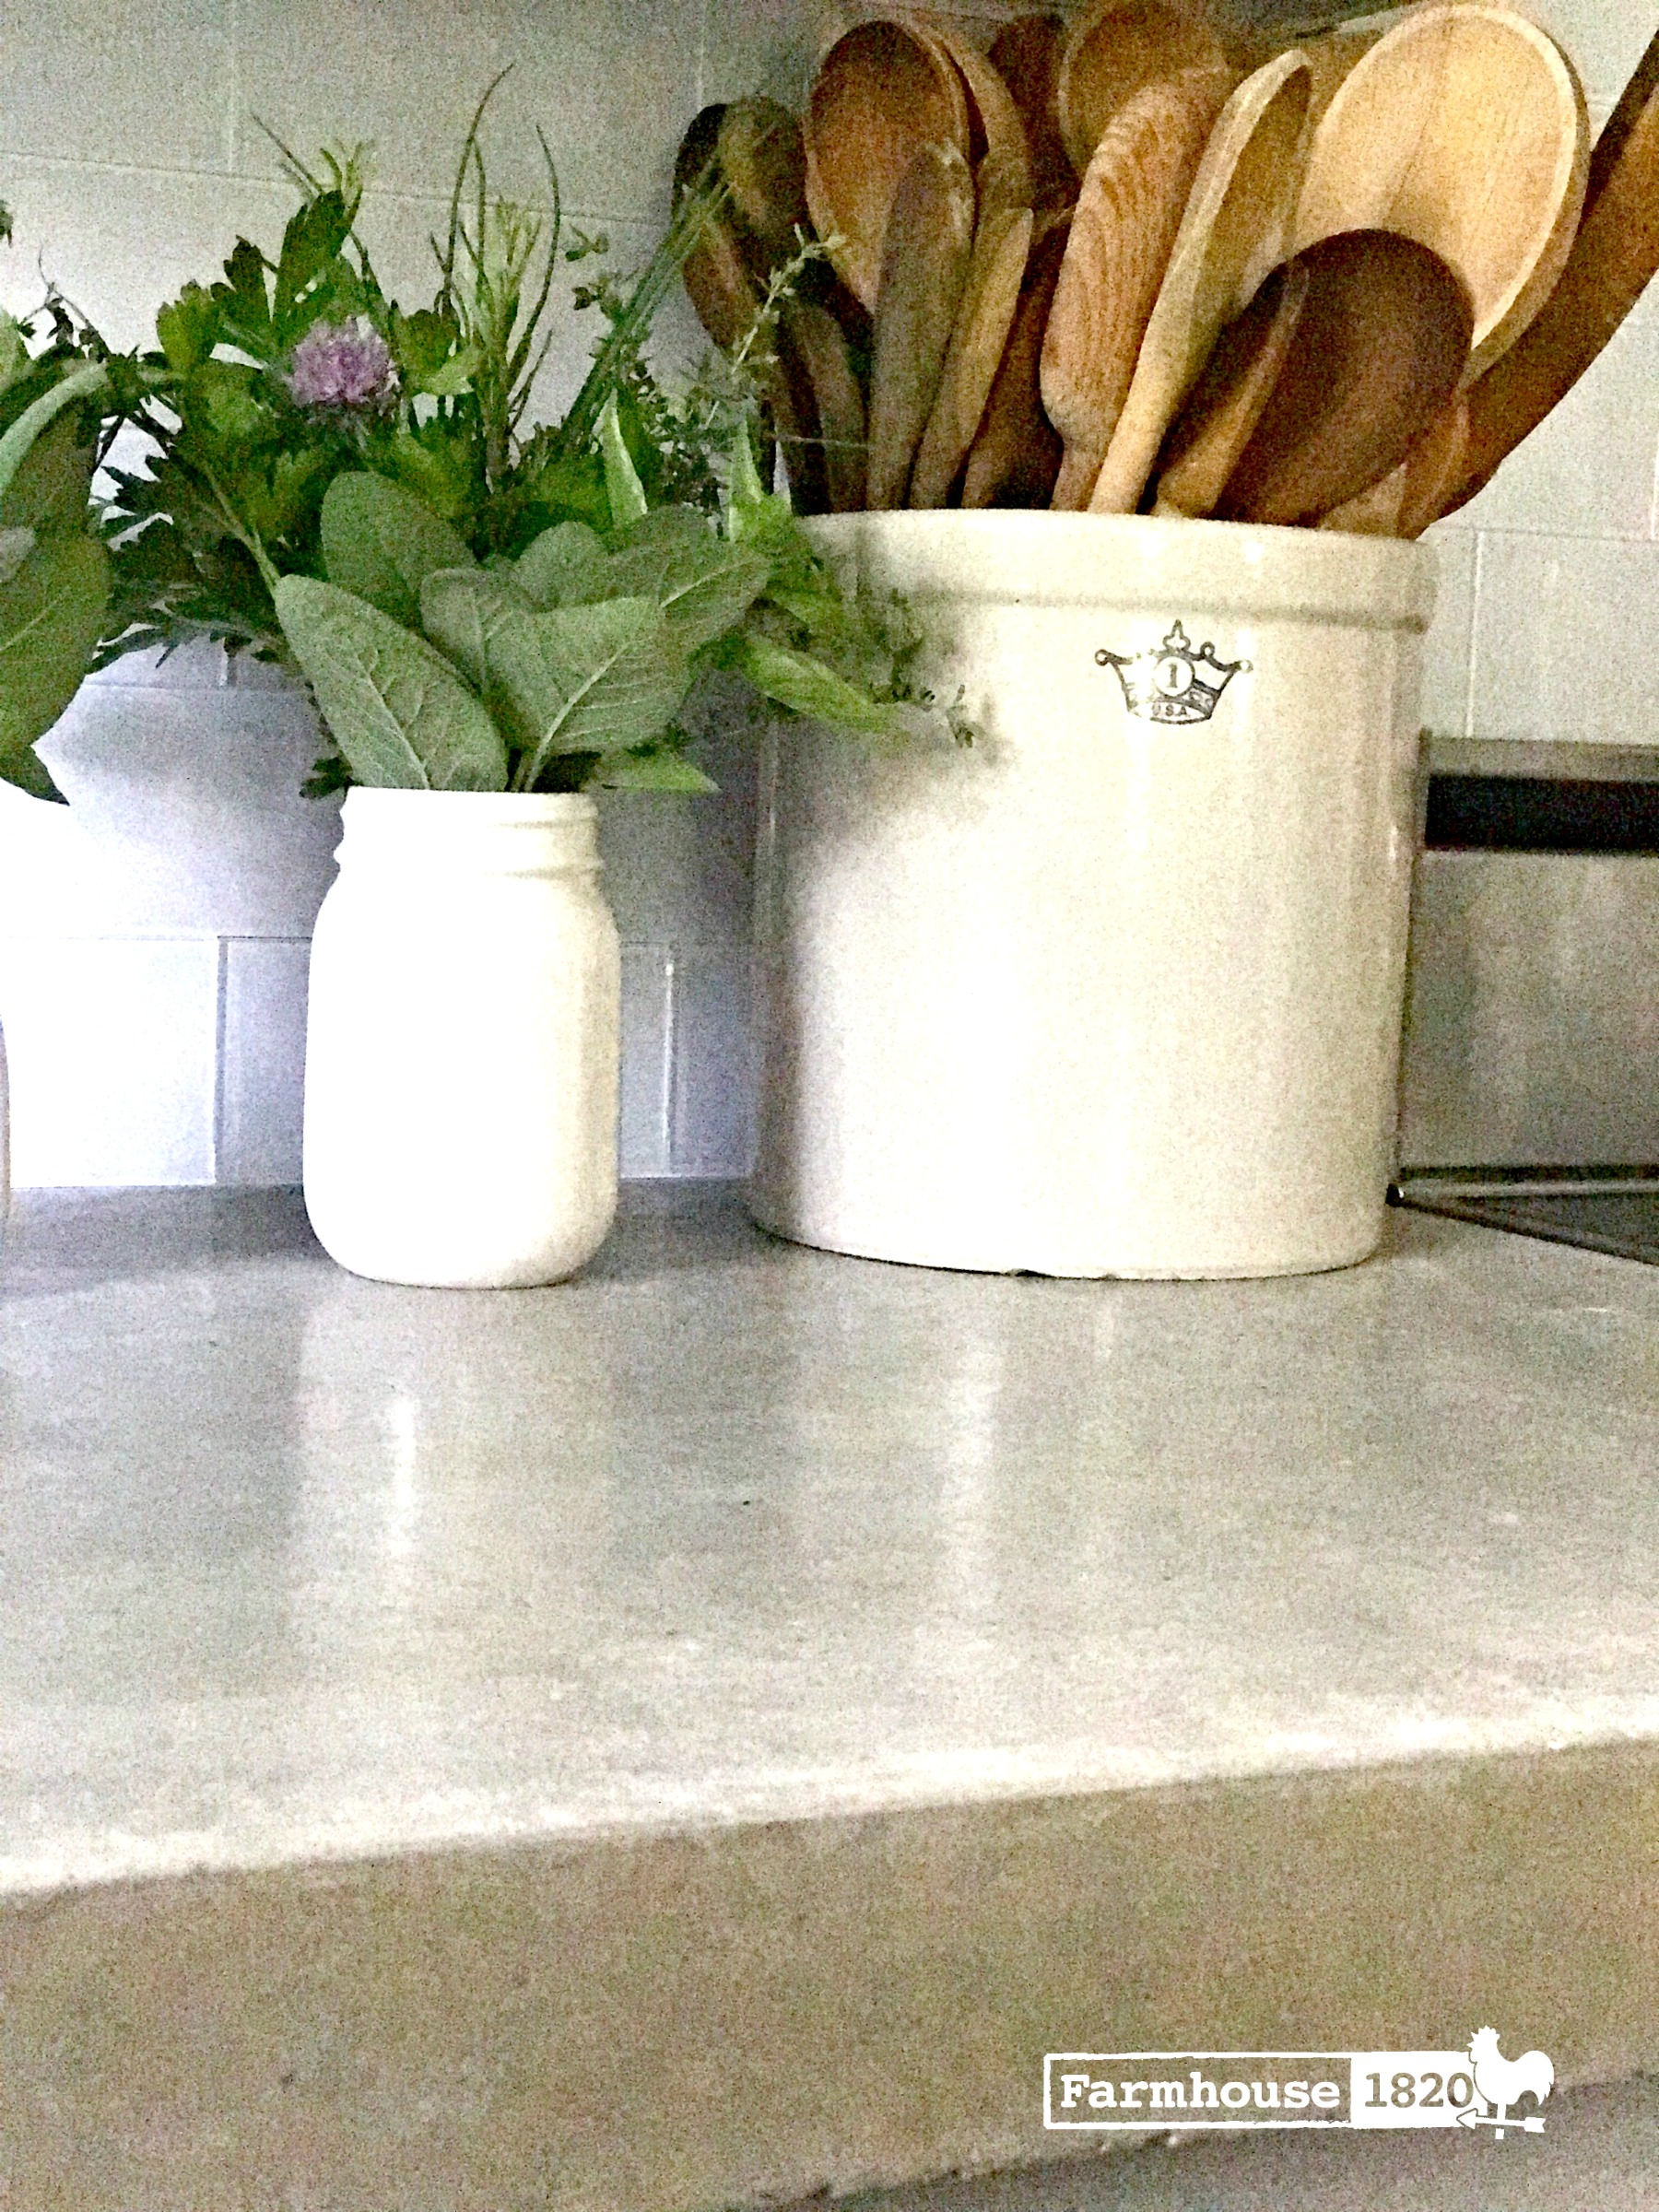 concrete countertops - the finished edge